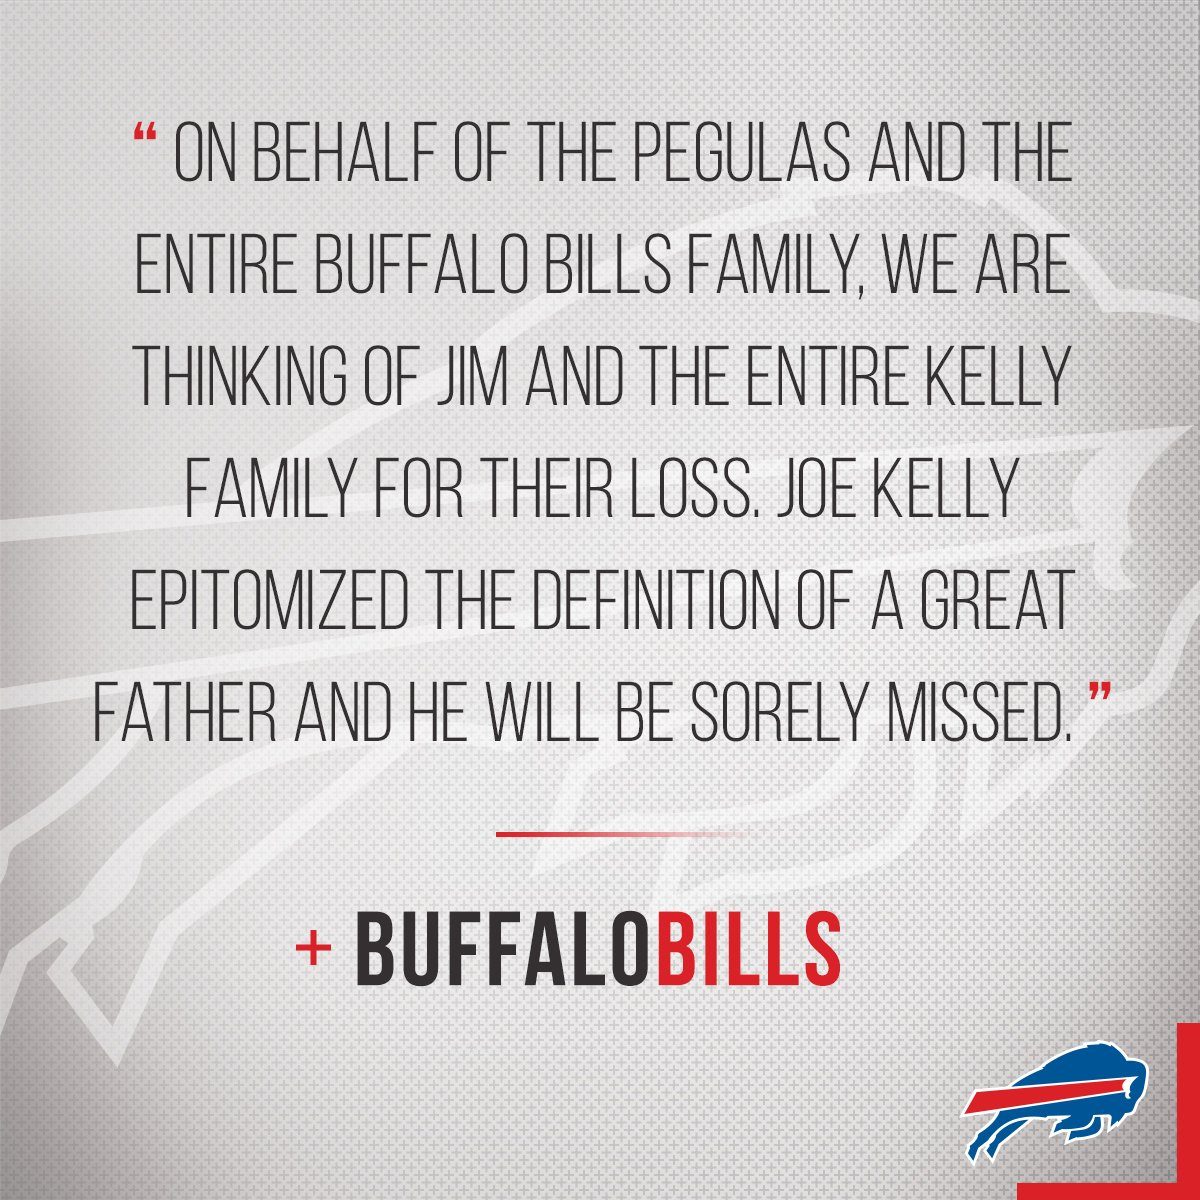 Buffalo Bills On Twitter The Bills Family Is Thinking Of